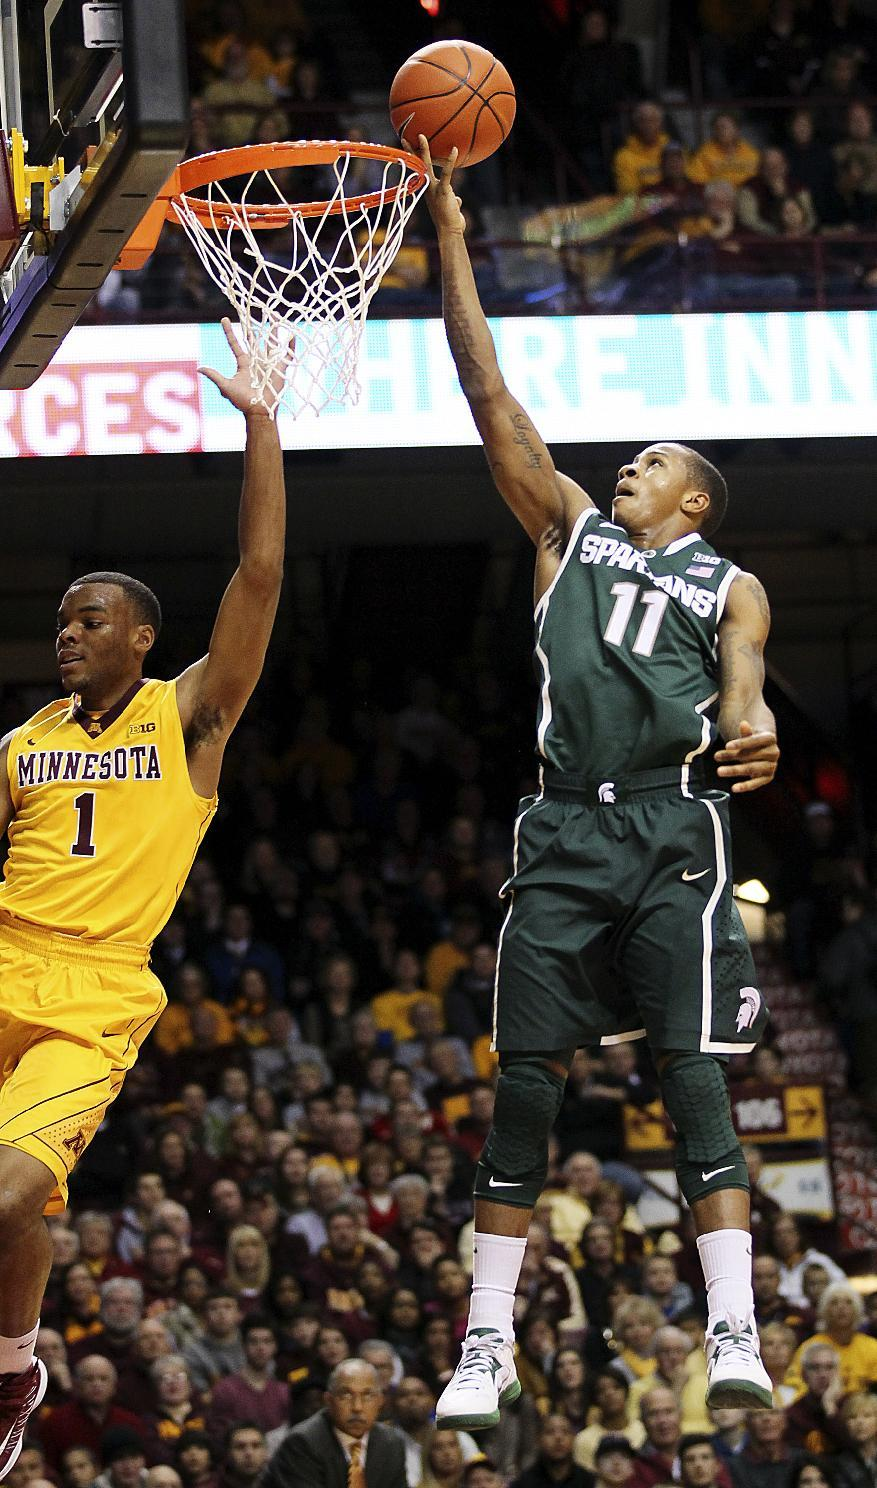 Michigan State guard Keith Appling (11) shoots a layup in front of Minnesota guard Andre Hollins (1) in the first half of their NCAA college basketball game, Monday, Dec. 31, 2012, in Minneapolis. (AP Photo/Andy Clayton King)